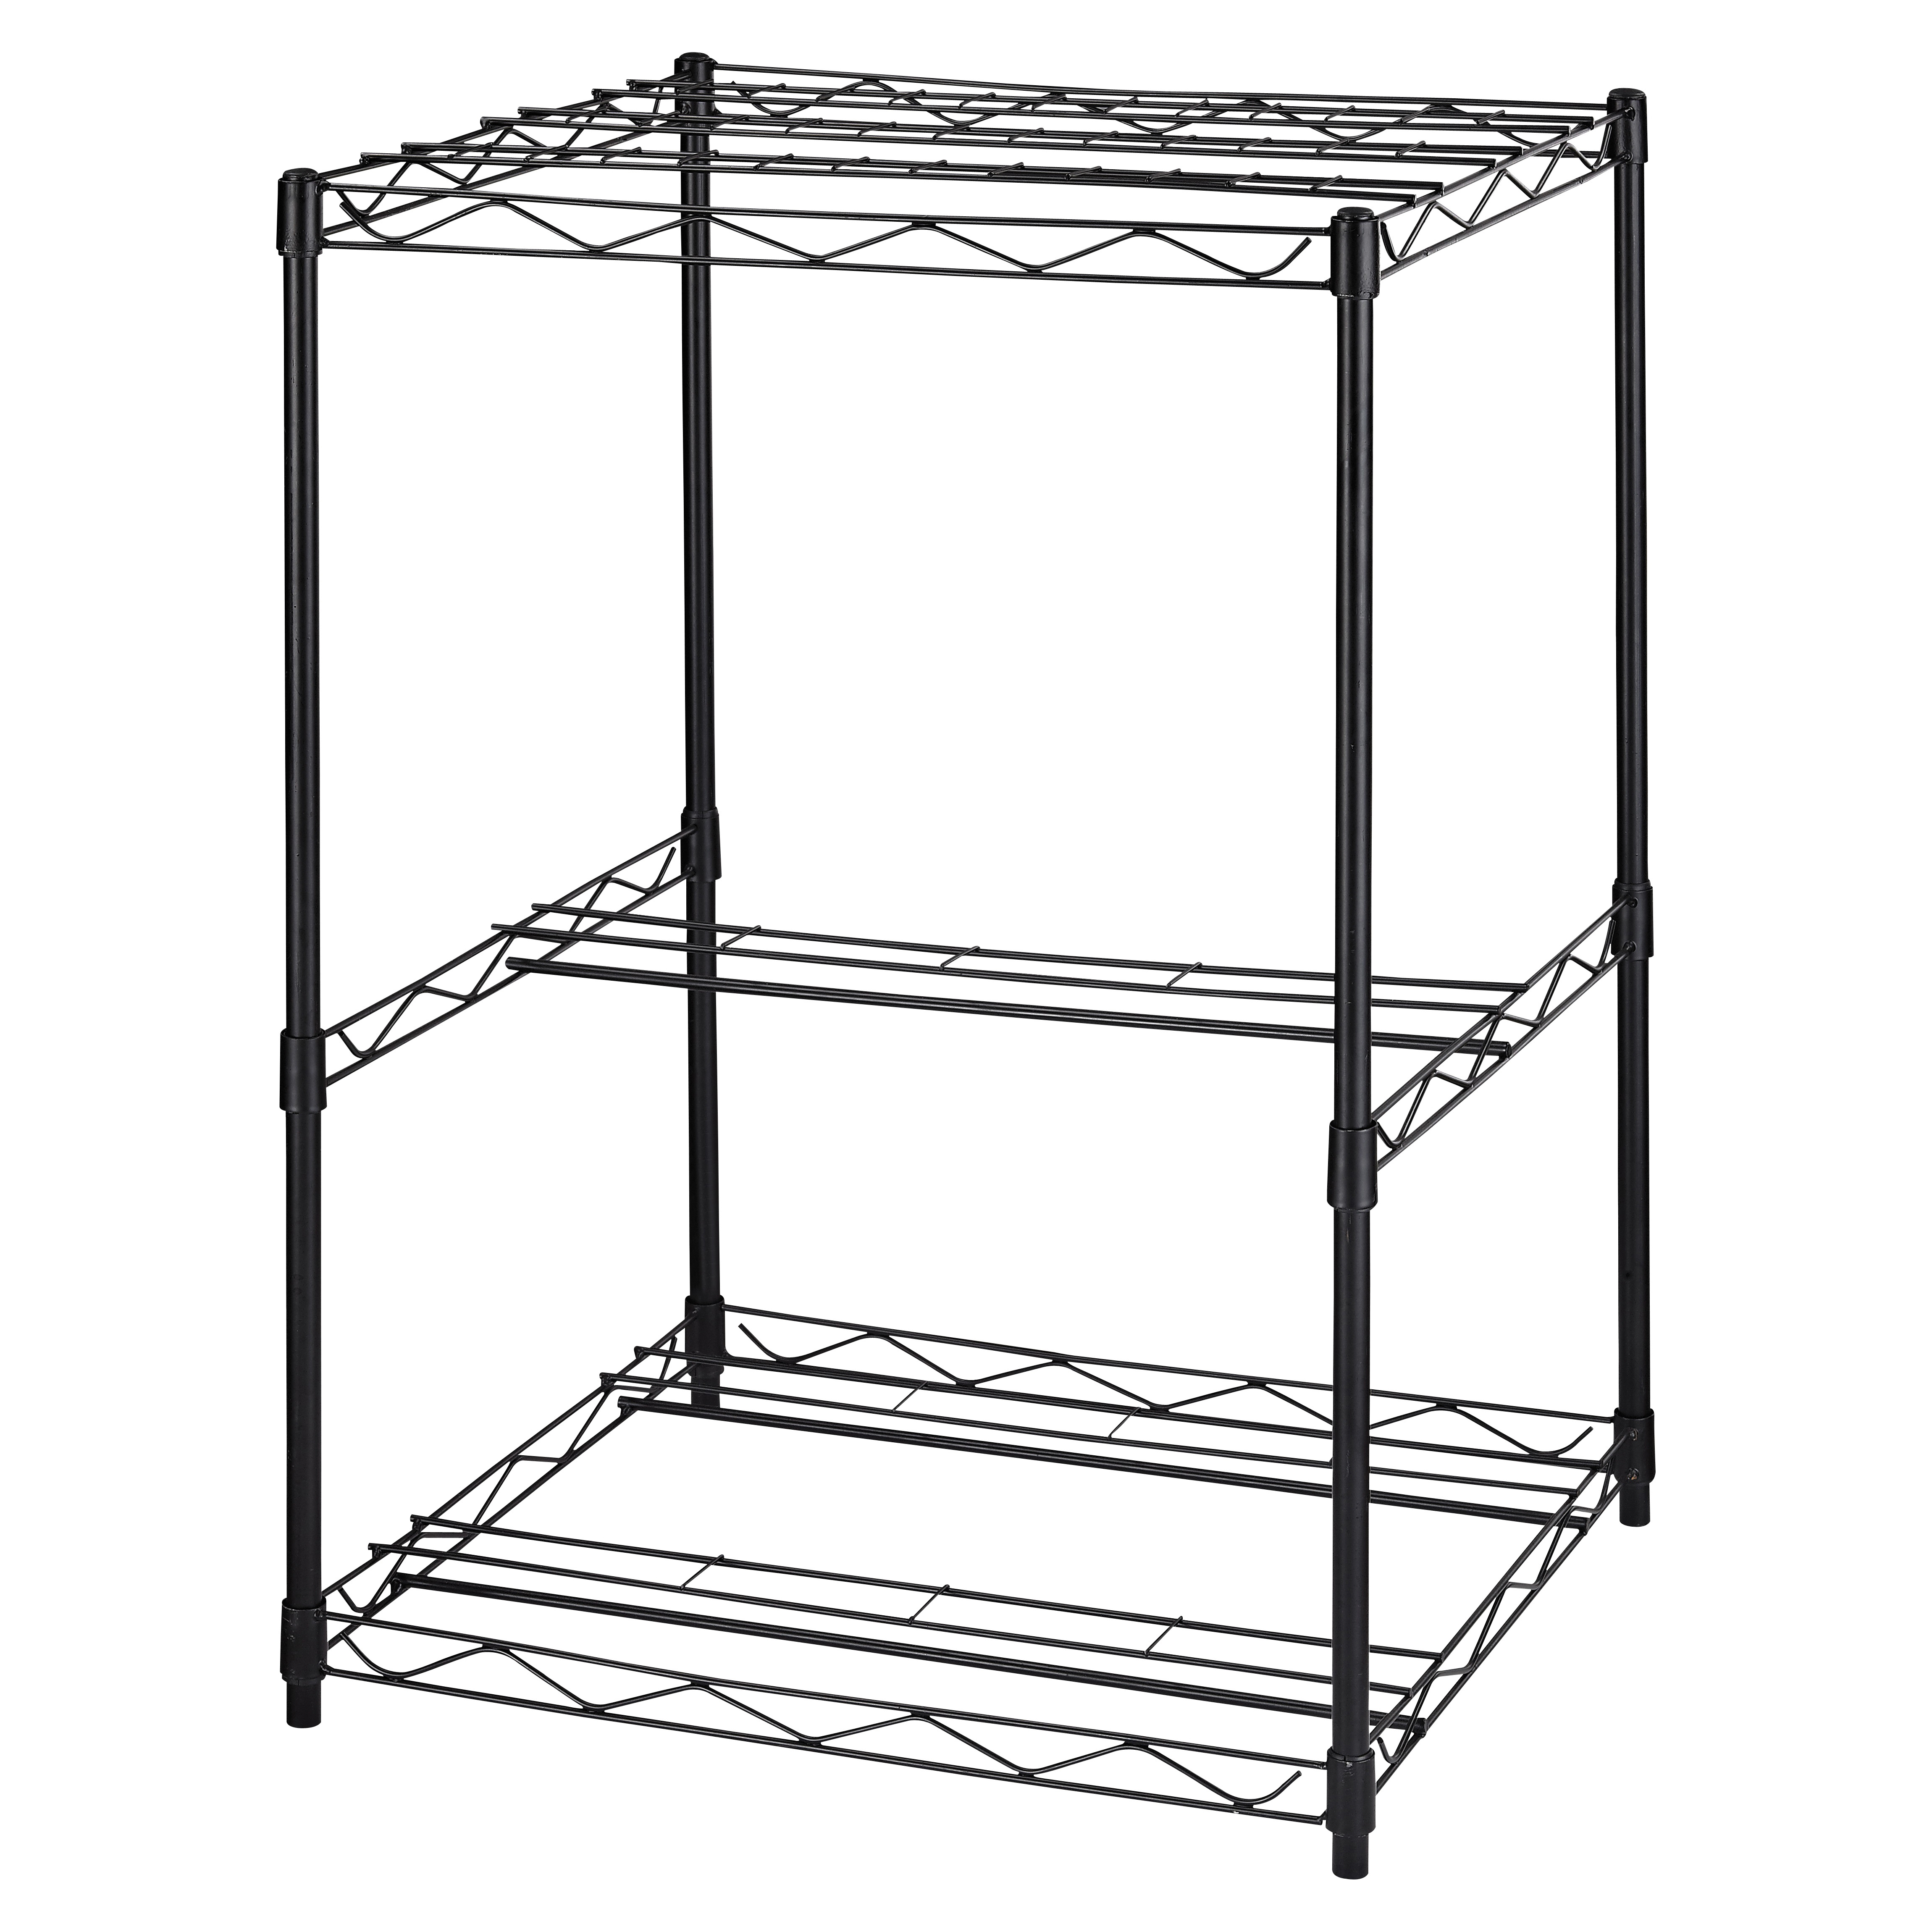 Picture of Landscapers Select PS-0011 Tool Rack, 2.4 in W, 49.6 in H, 26 in L